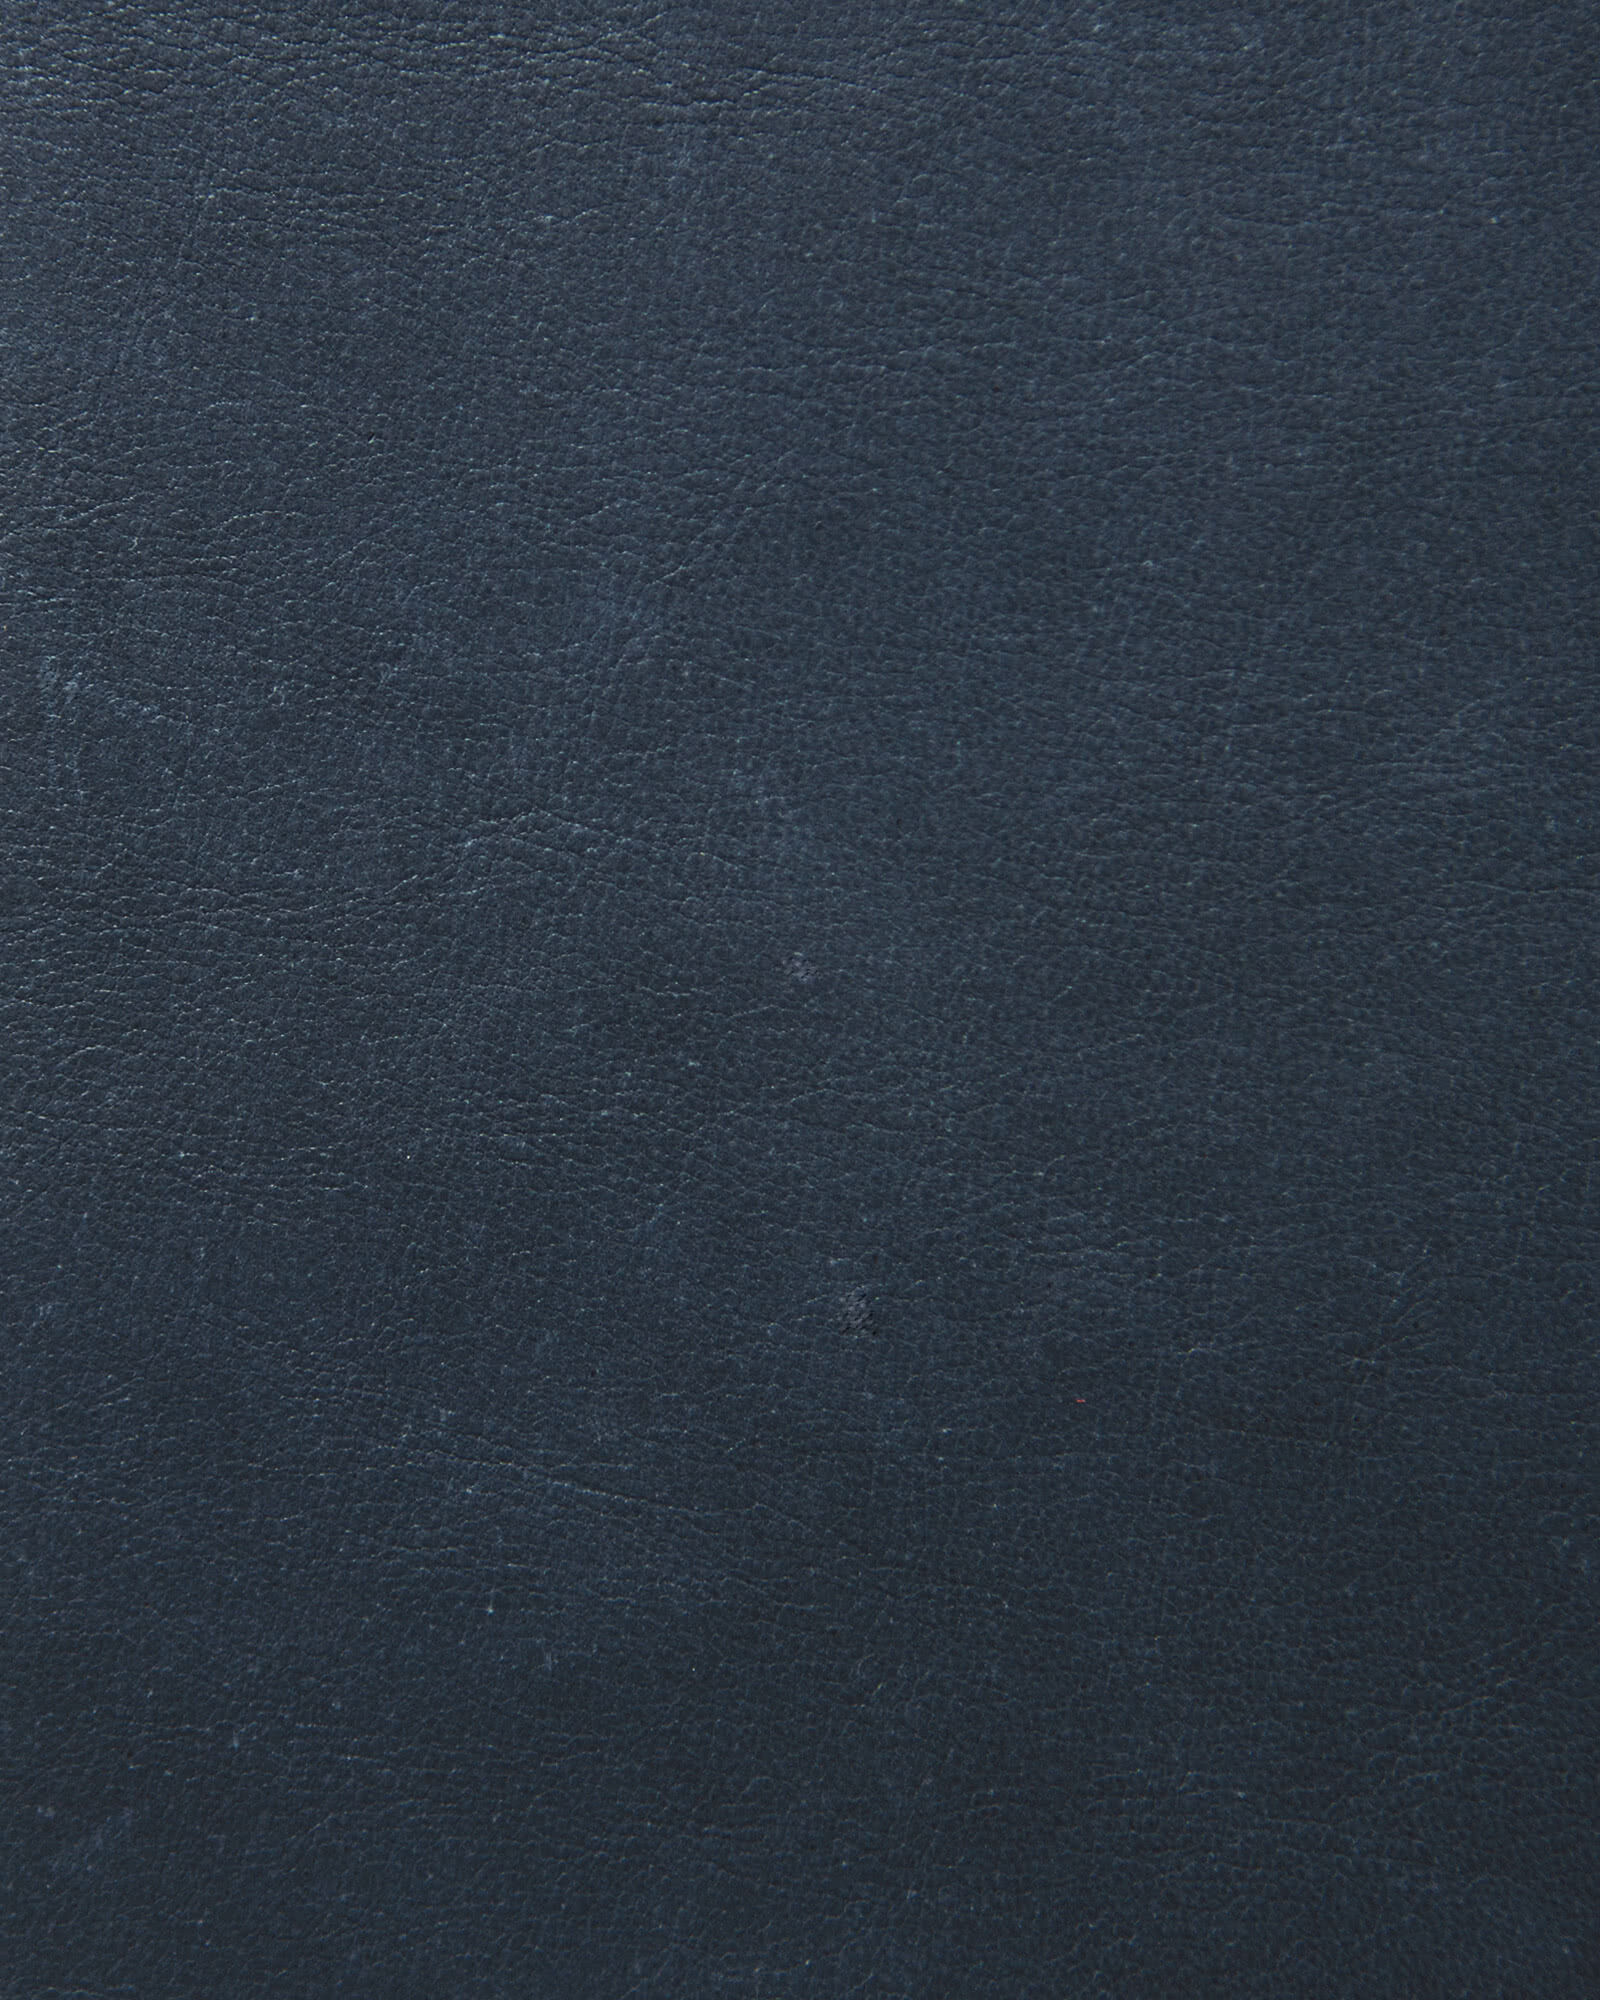 Luxe Leather - Blue Moon,